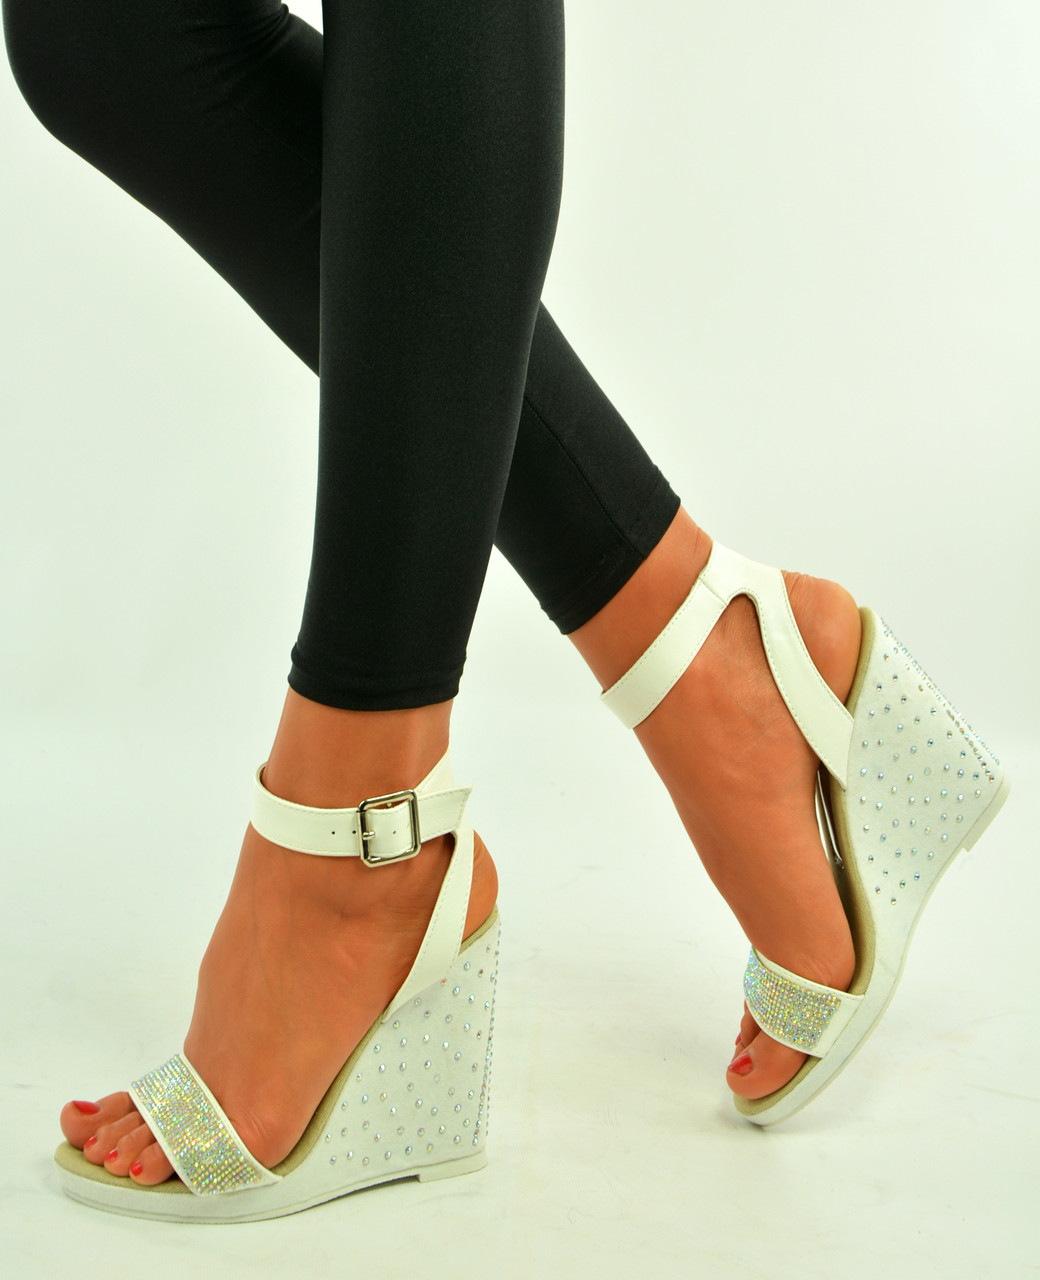 Ladies White Ankle Strap Sandals Shoes